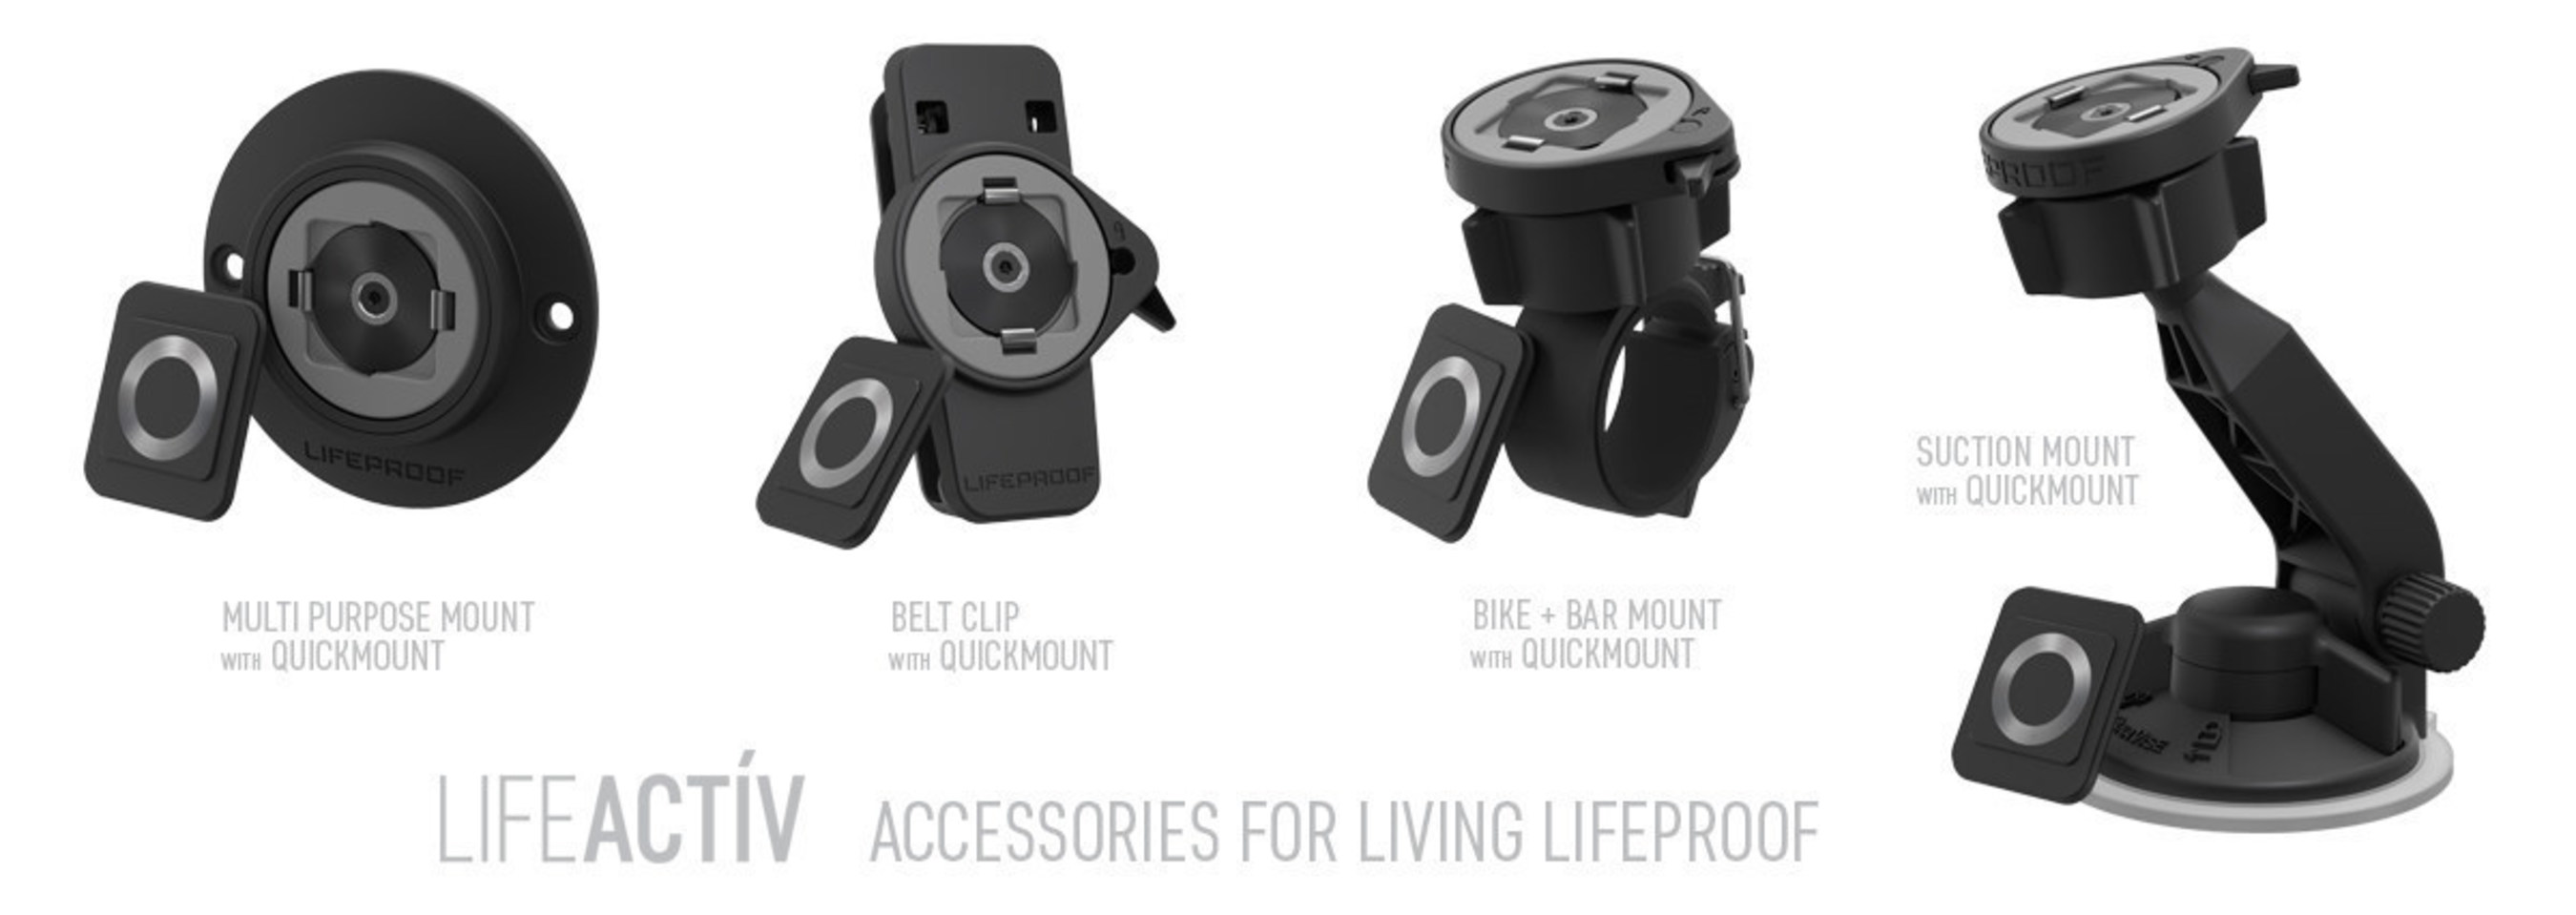 LIFEACTIV universal accessories from LifeProof available now on lifeproof.com.